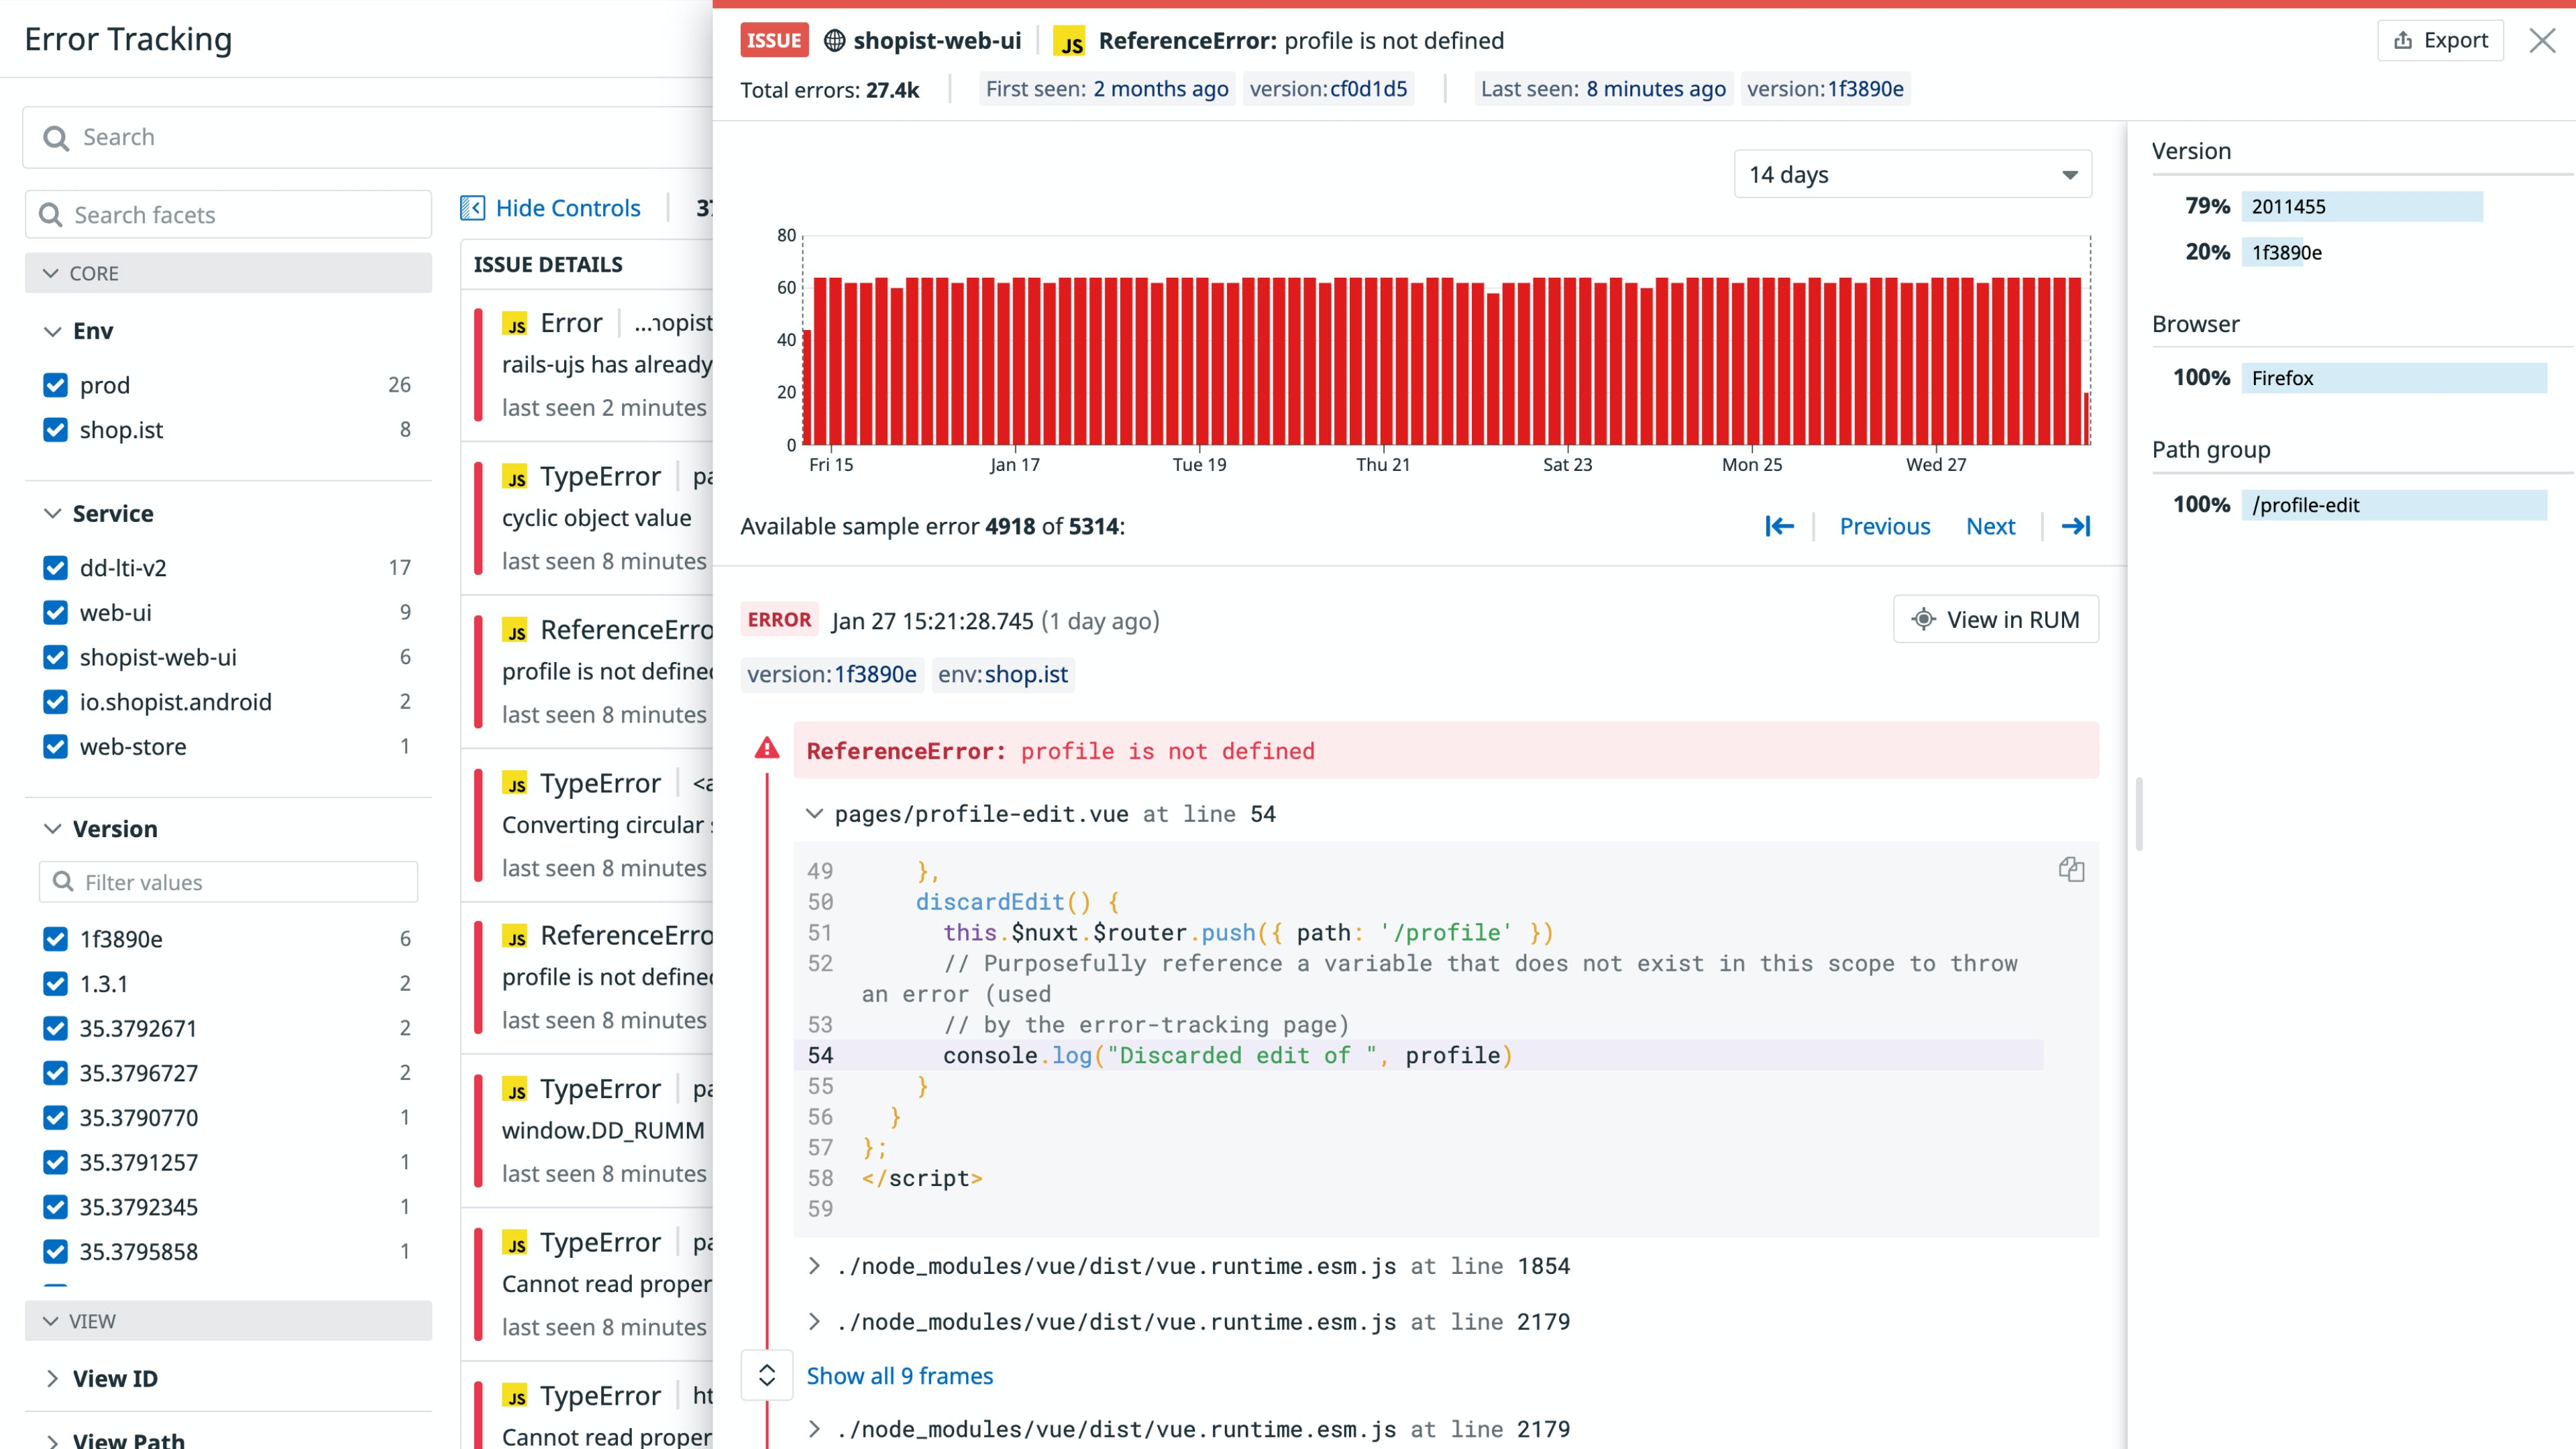 Troubleshoot and resolve errors quickly with Datadog error tracking